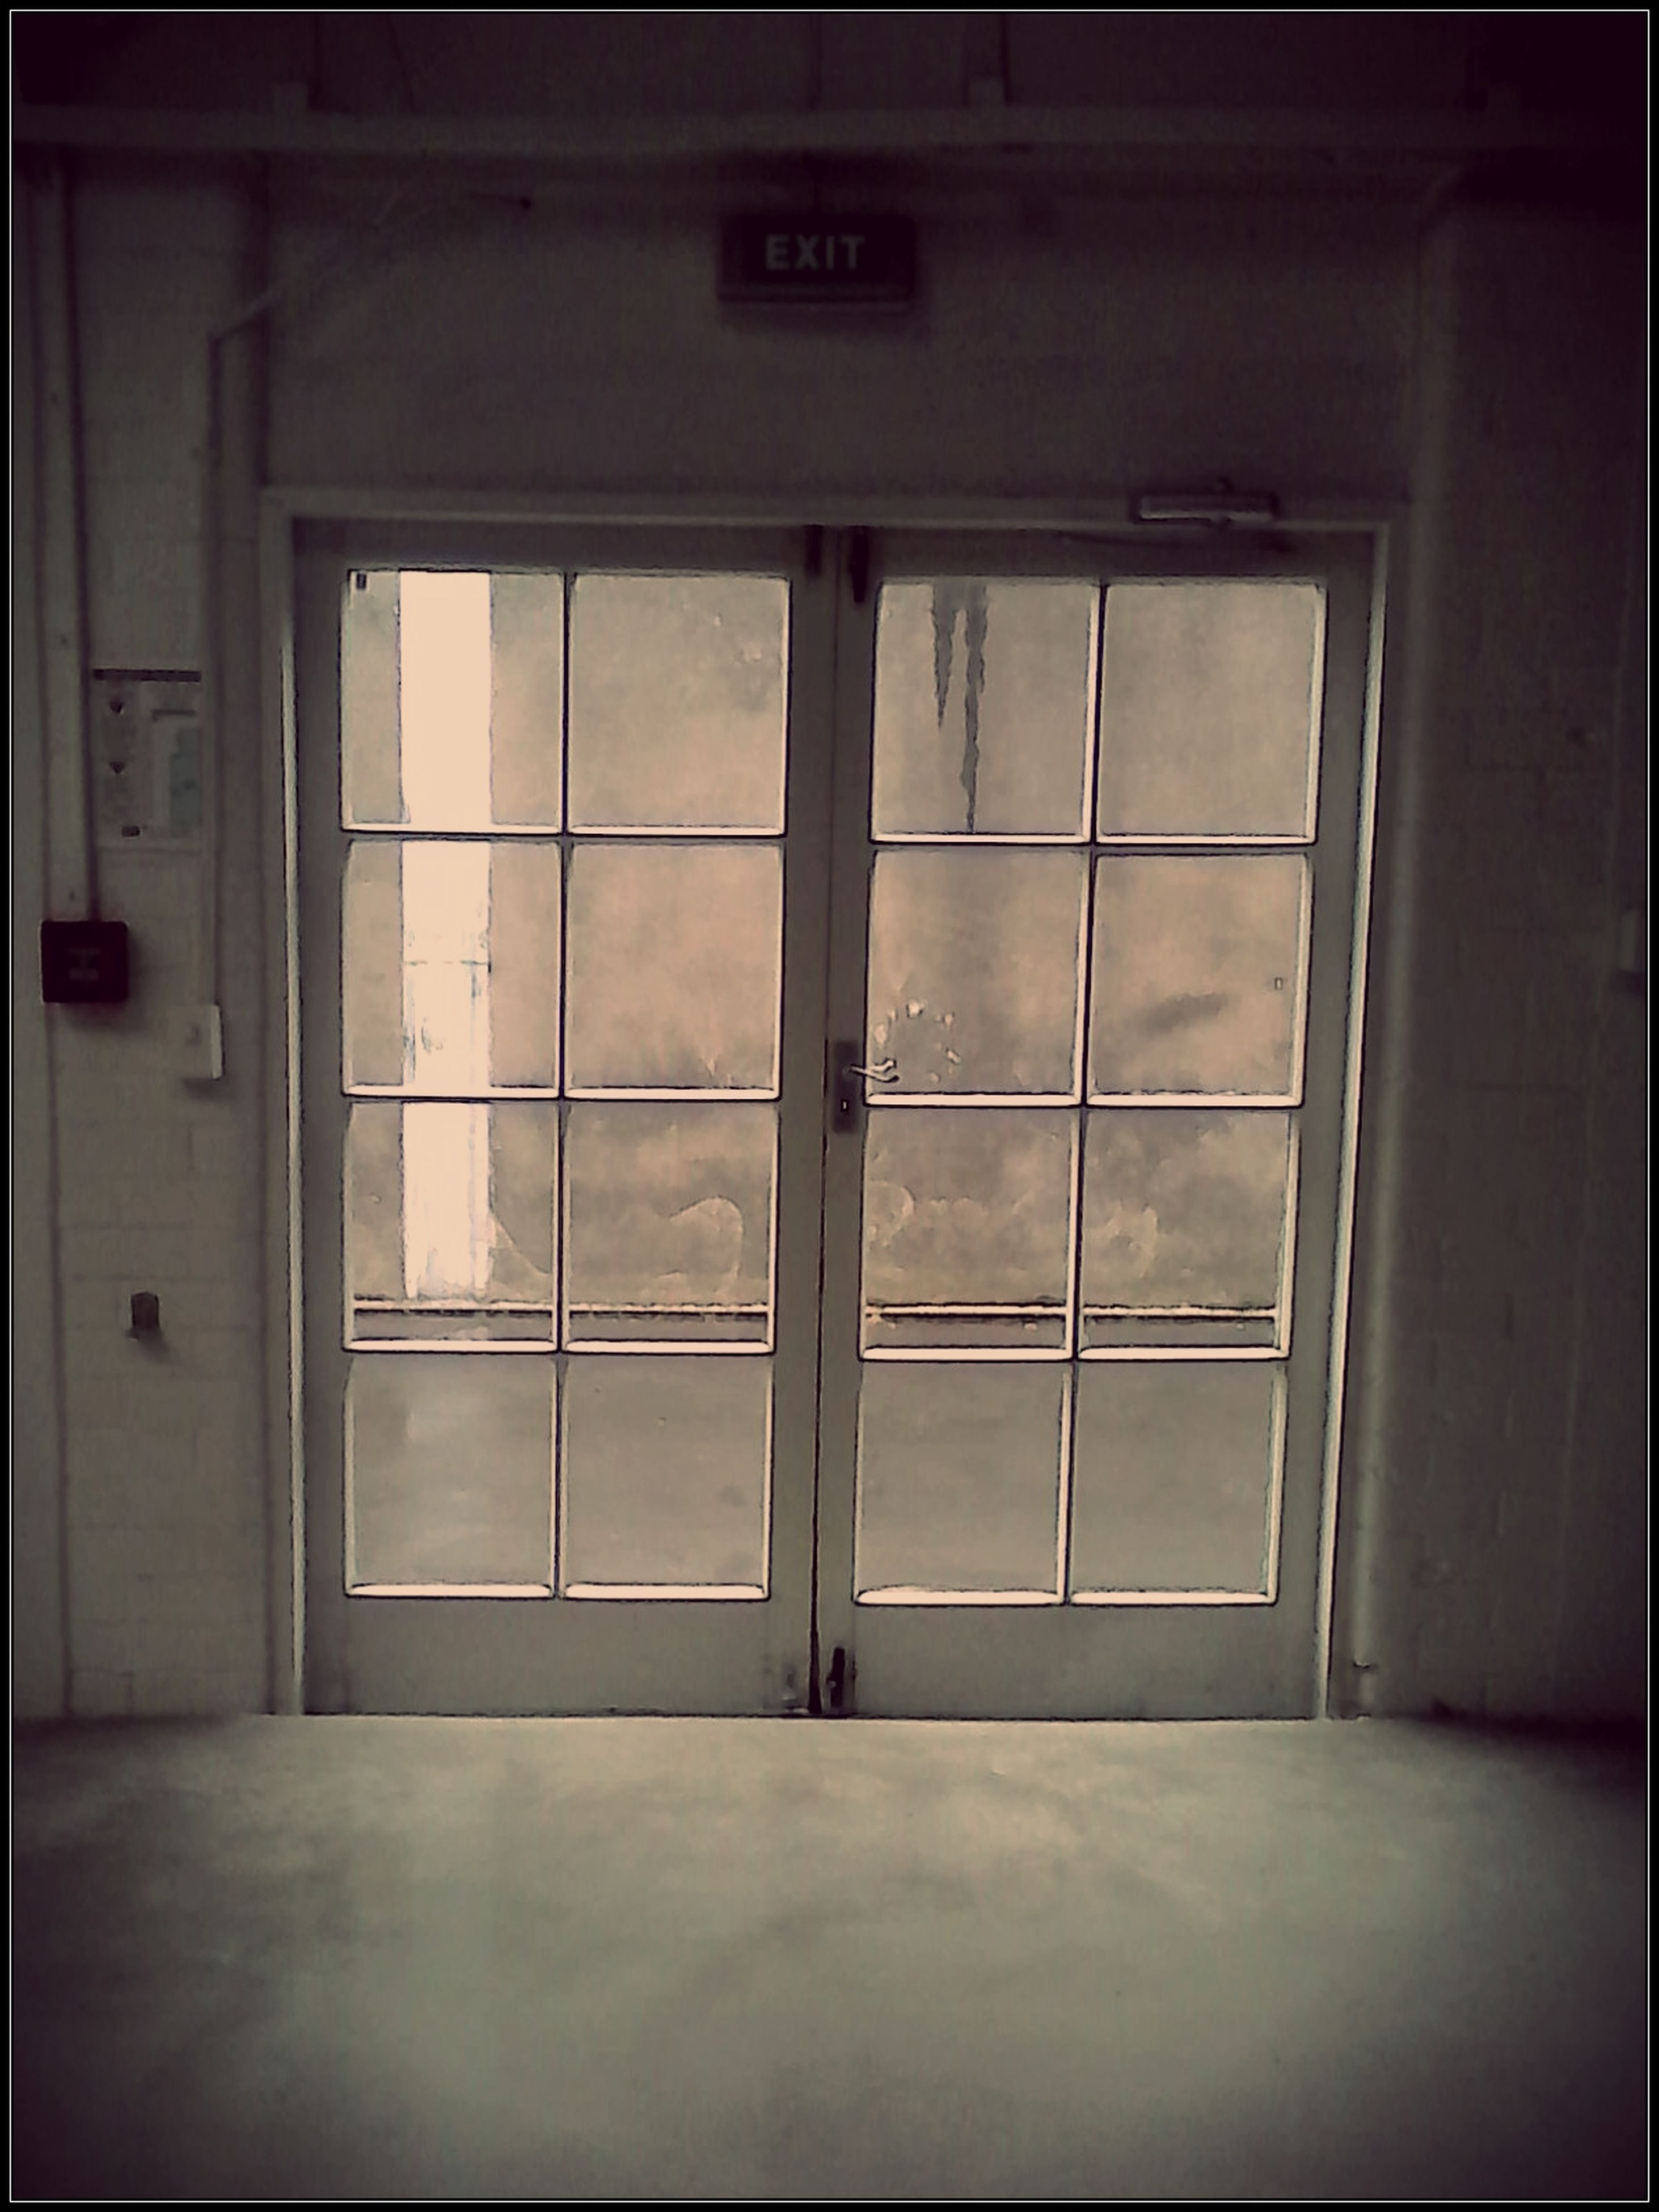 window, indoors, glass - material, door, architecture, transparent, built structure, closed, house, no people, entrance, day, building exterior, reflection, open, empty, safety, building, doorway, security